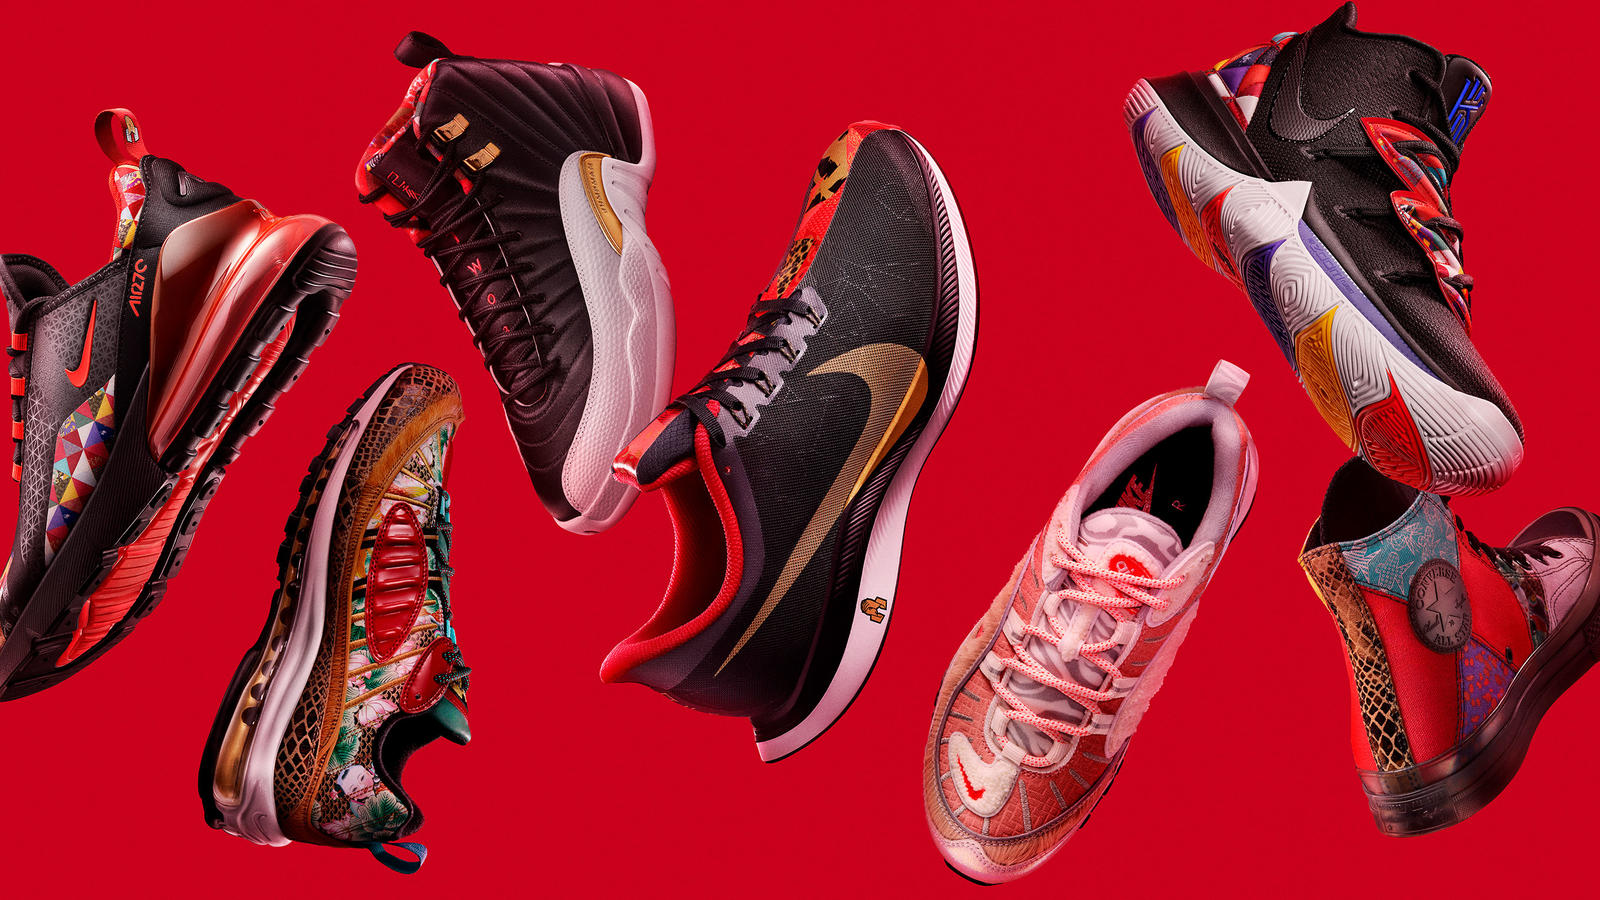 The Year of the Pig Chinese New Year Collection Brings Together 12 Years of Nike CNY 0